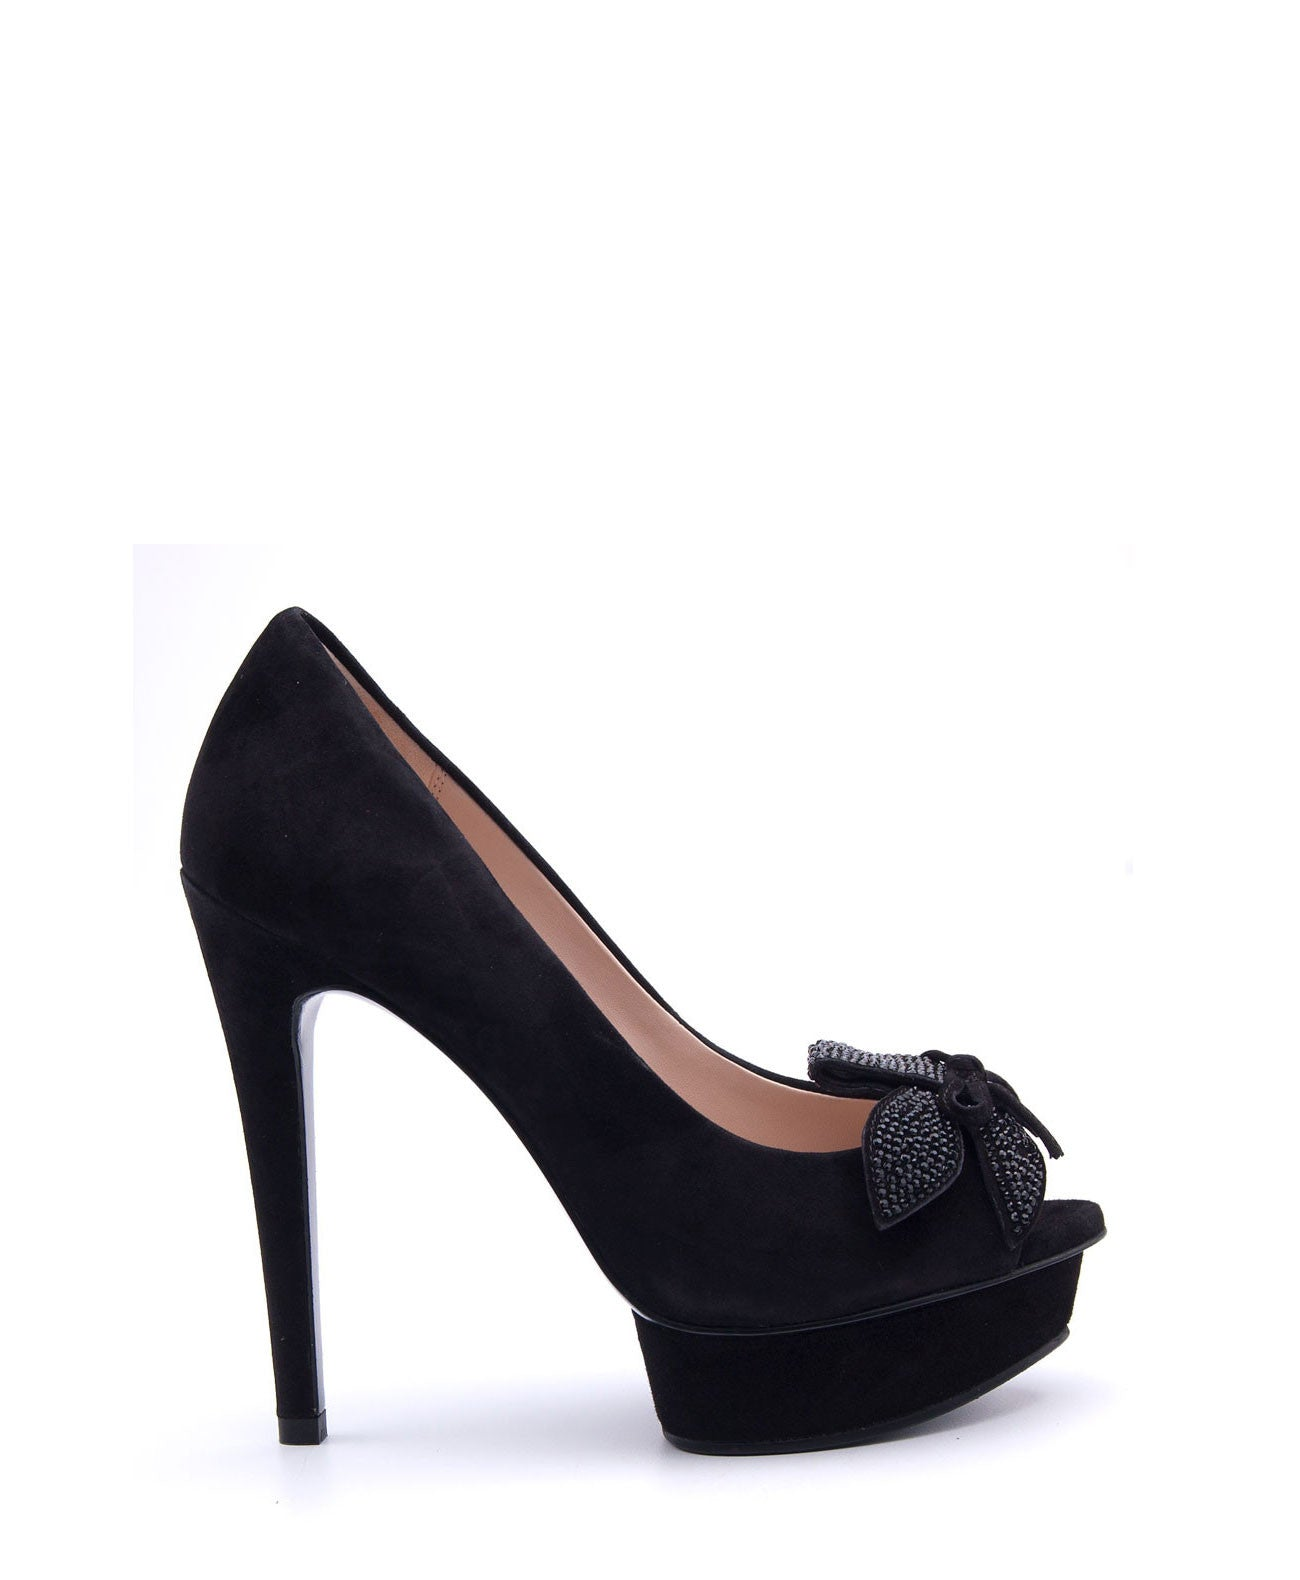 Mamet 2 Black Flower Pump - Koko & Palenki - 1